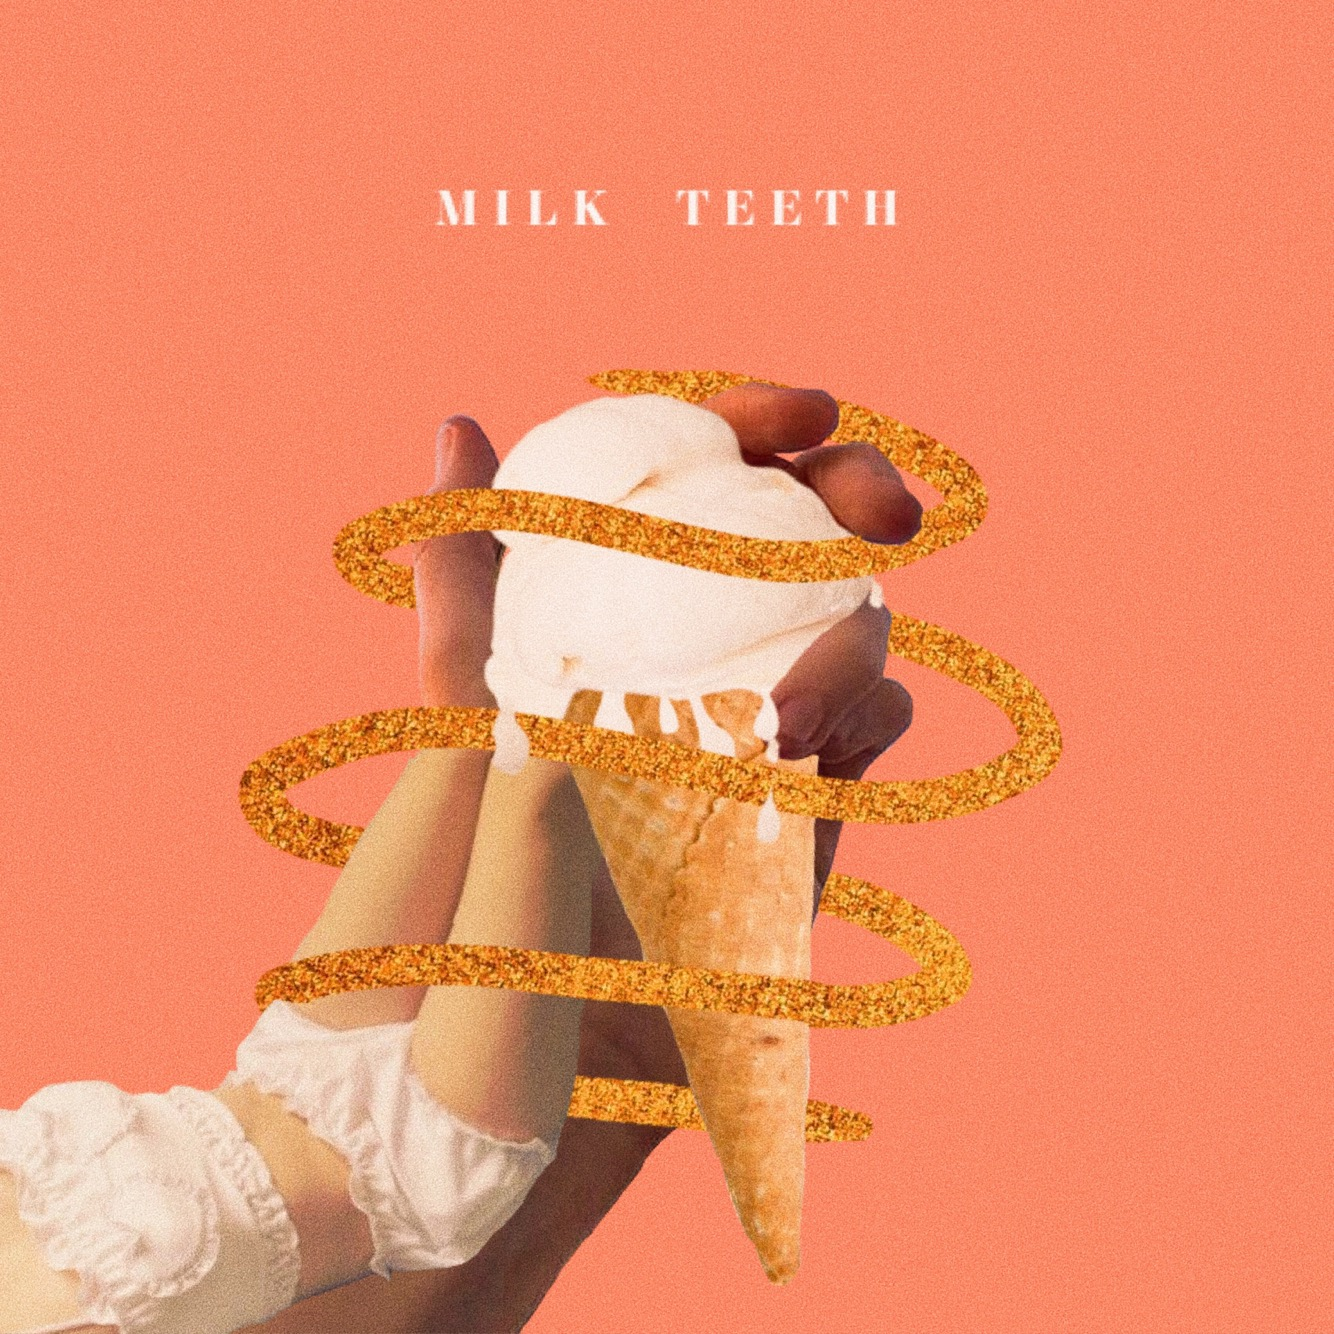 Prima Queen, Milk Teeth